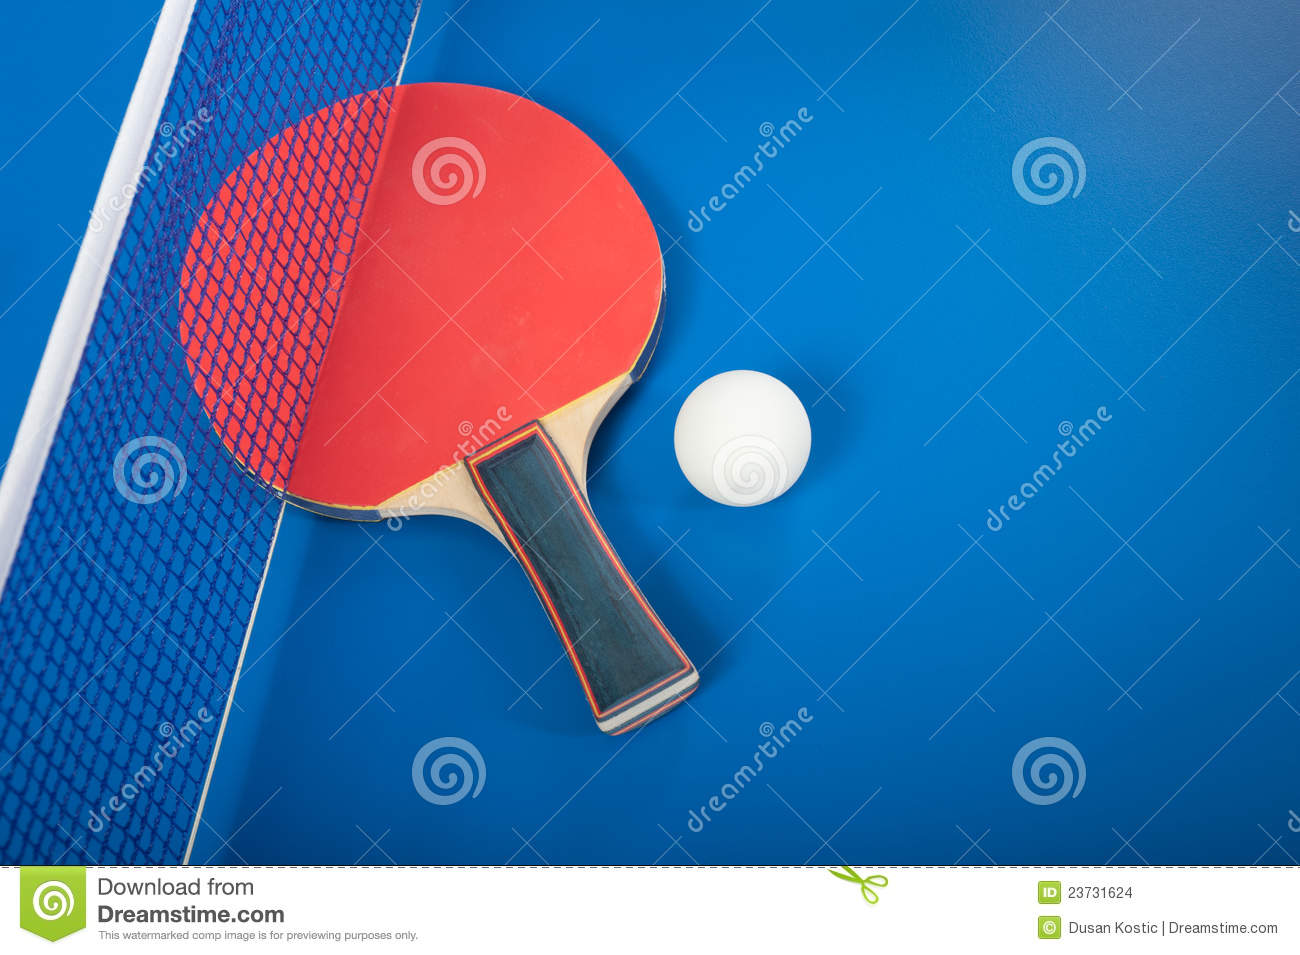 Equipment for table tennis stock images image 23731624 - Equipment for table tennis ...